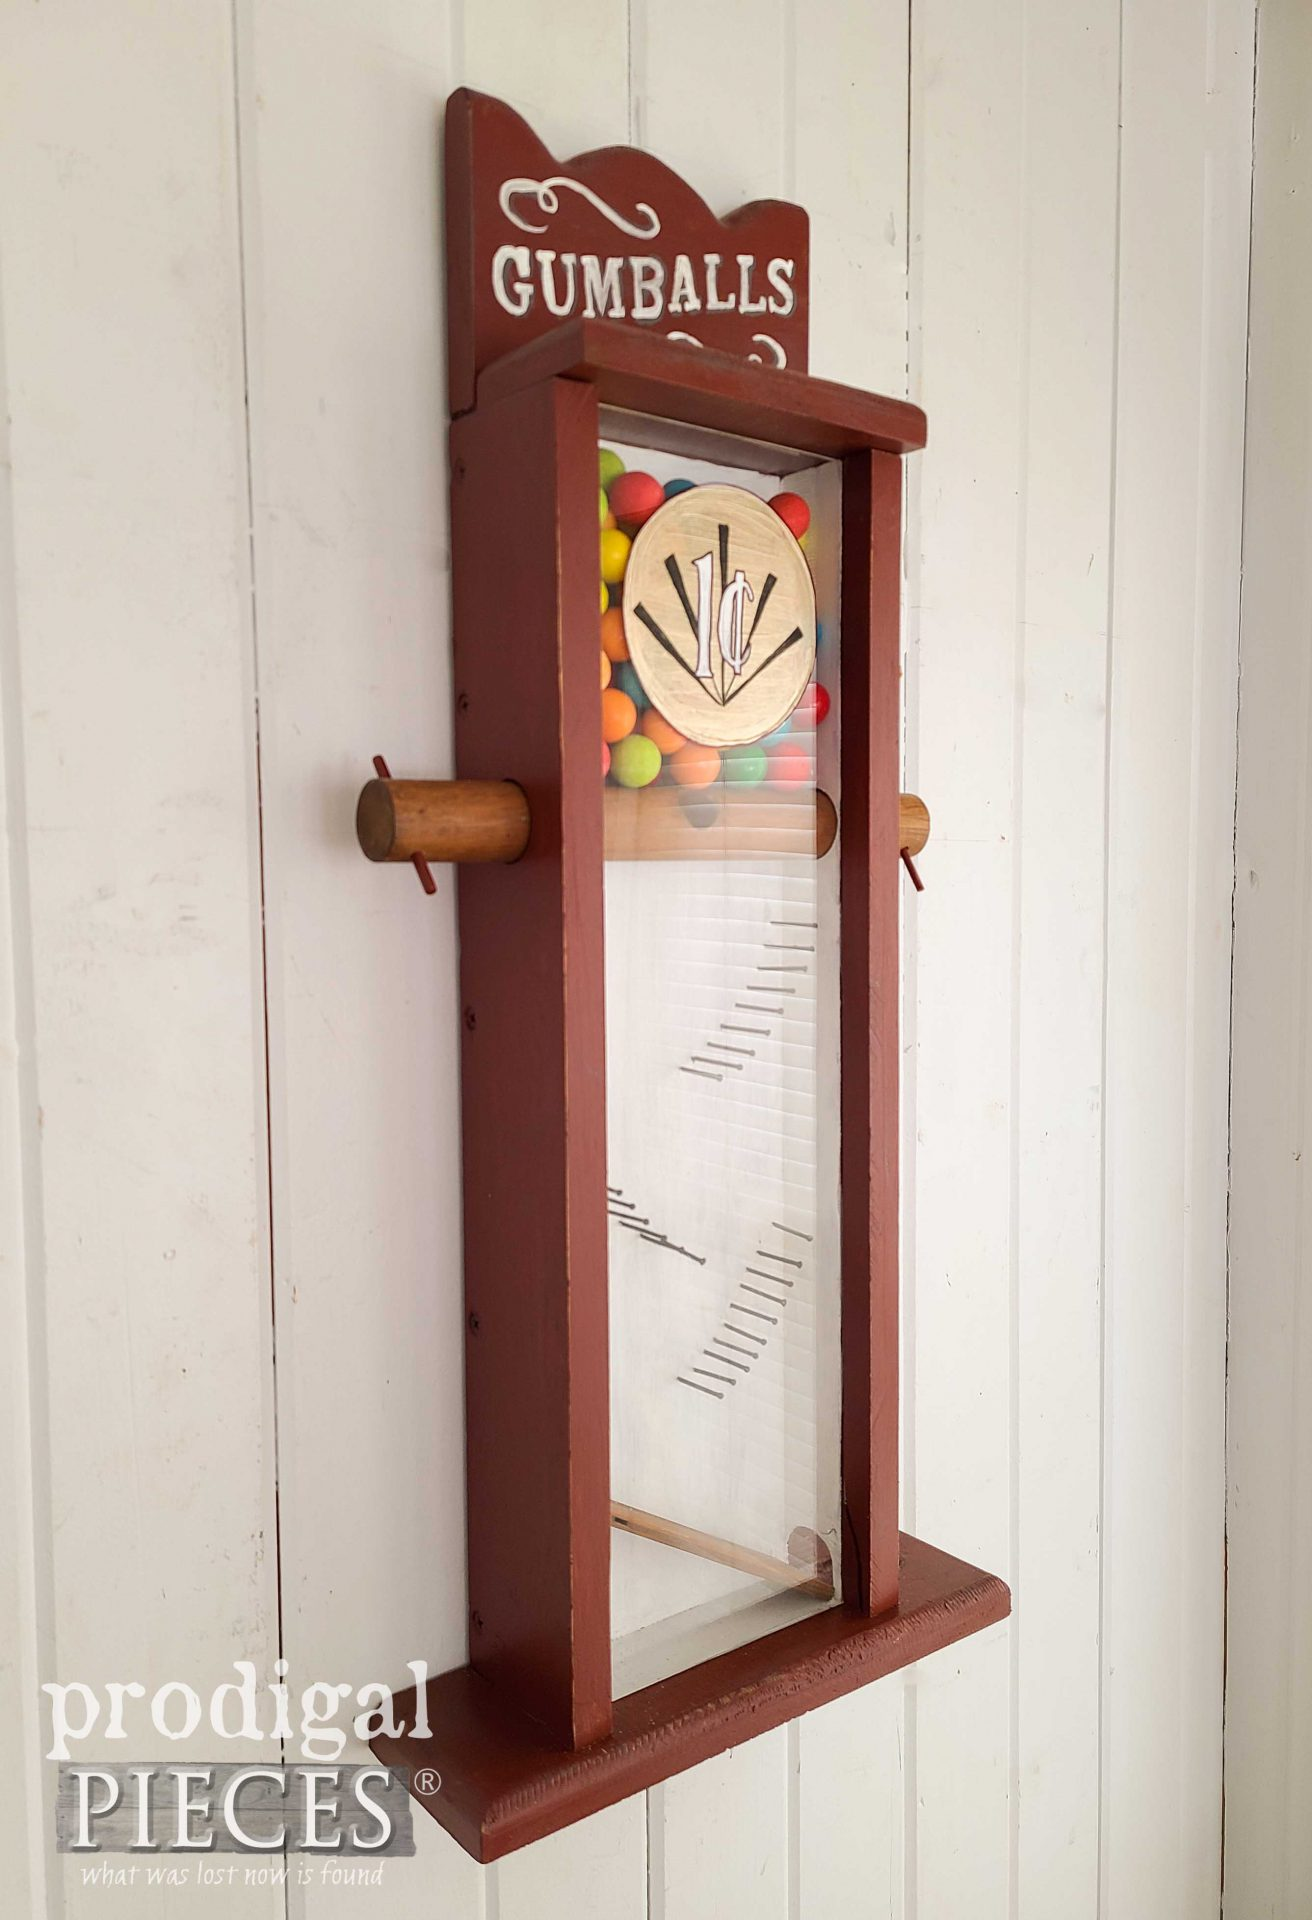 Farmhouse Style Wooden Gumball Machine by Larissa of Prodigal Pieces | prodigalpieces.com #prodigalpieces #home #homedecor #vintage